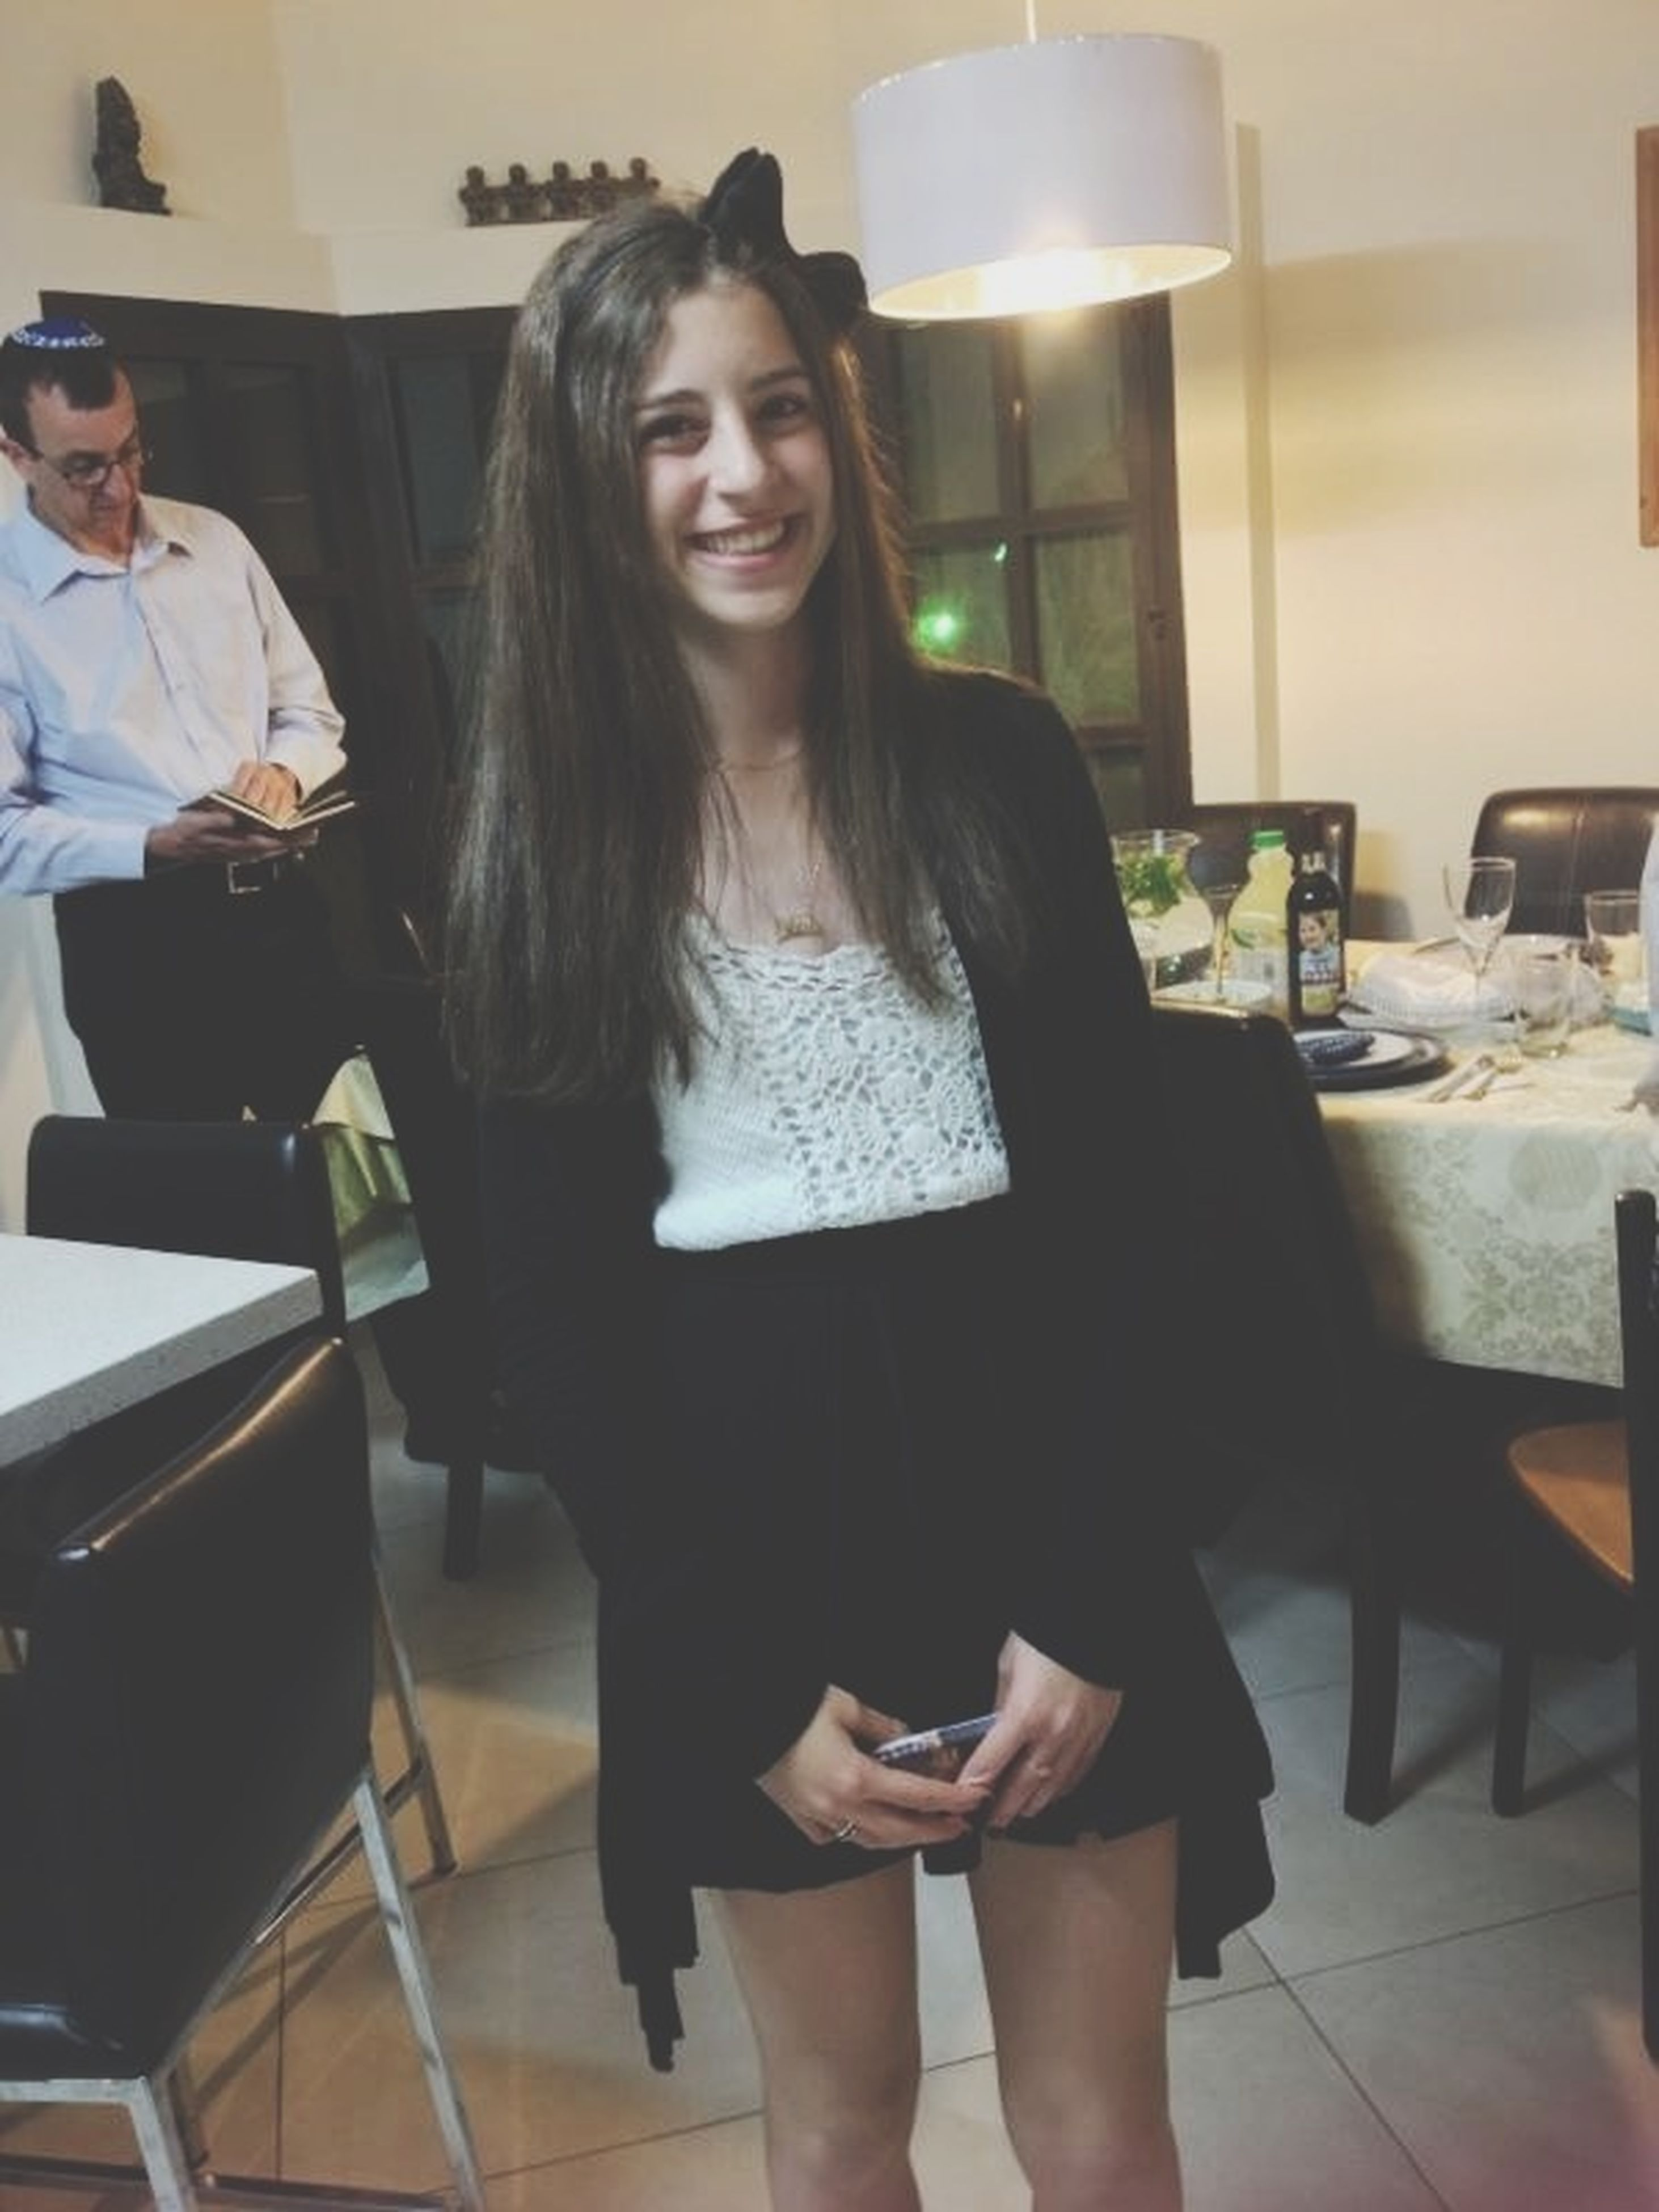 indoors, young adult, young women, lifestyles, sitting, leisure activity, casual clothing, person, long hair, front view, standing, home interior, chair, table, three quarter length, looking at camera